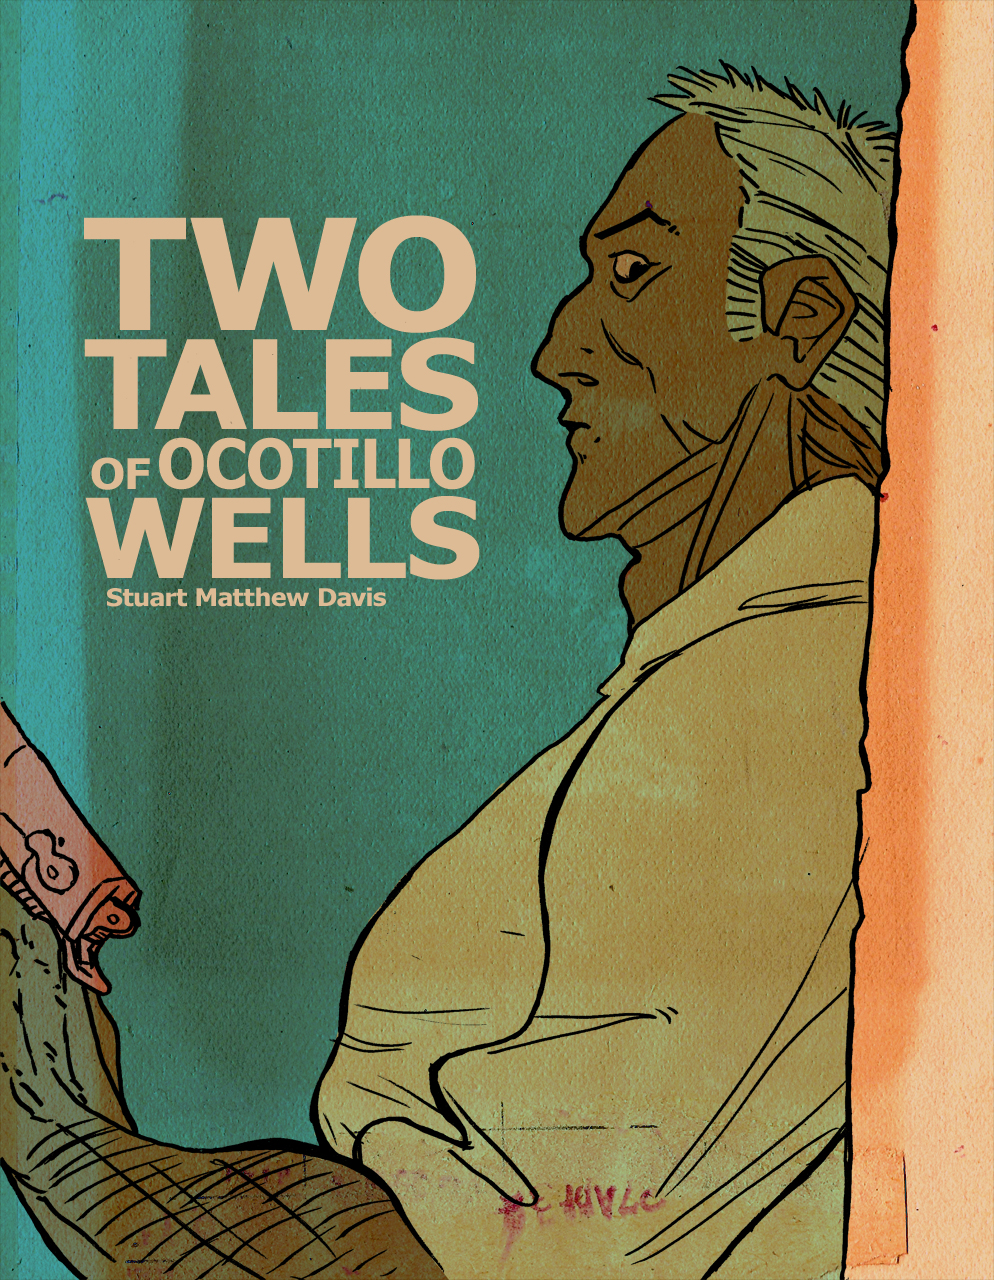 two tale of stories About tales of two americas thirty-six major contemporary writers examine life in a deeply divided america—including anthony doerr, ann patchett, roxane gay, rebecca solnit, hector tobar, joyce carol oates, edwidge danticat, richard russo, eula bliss, karen russell, and many more.